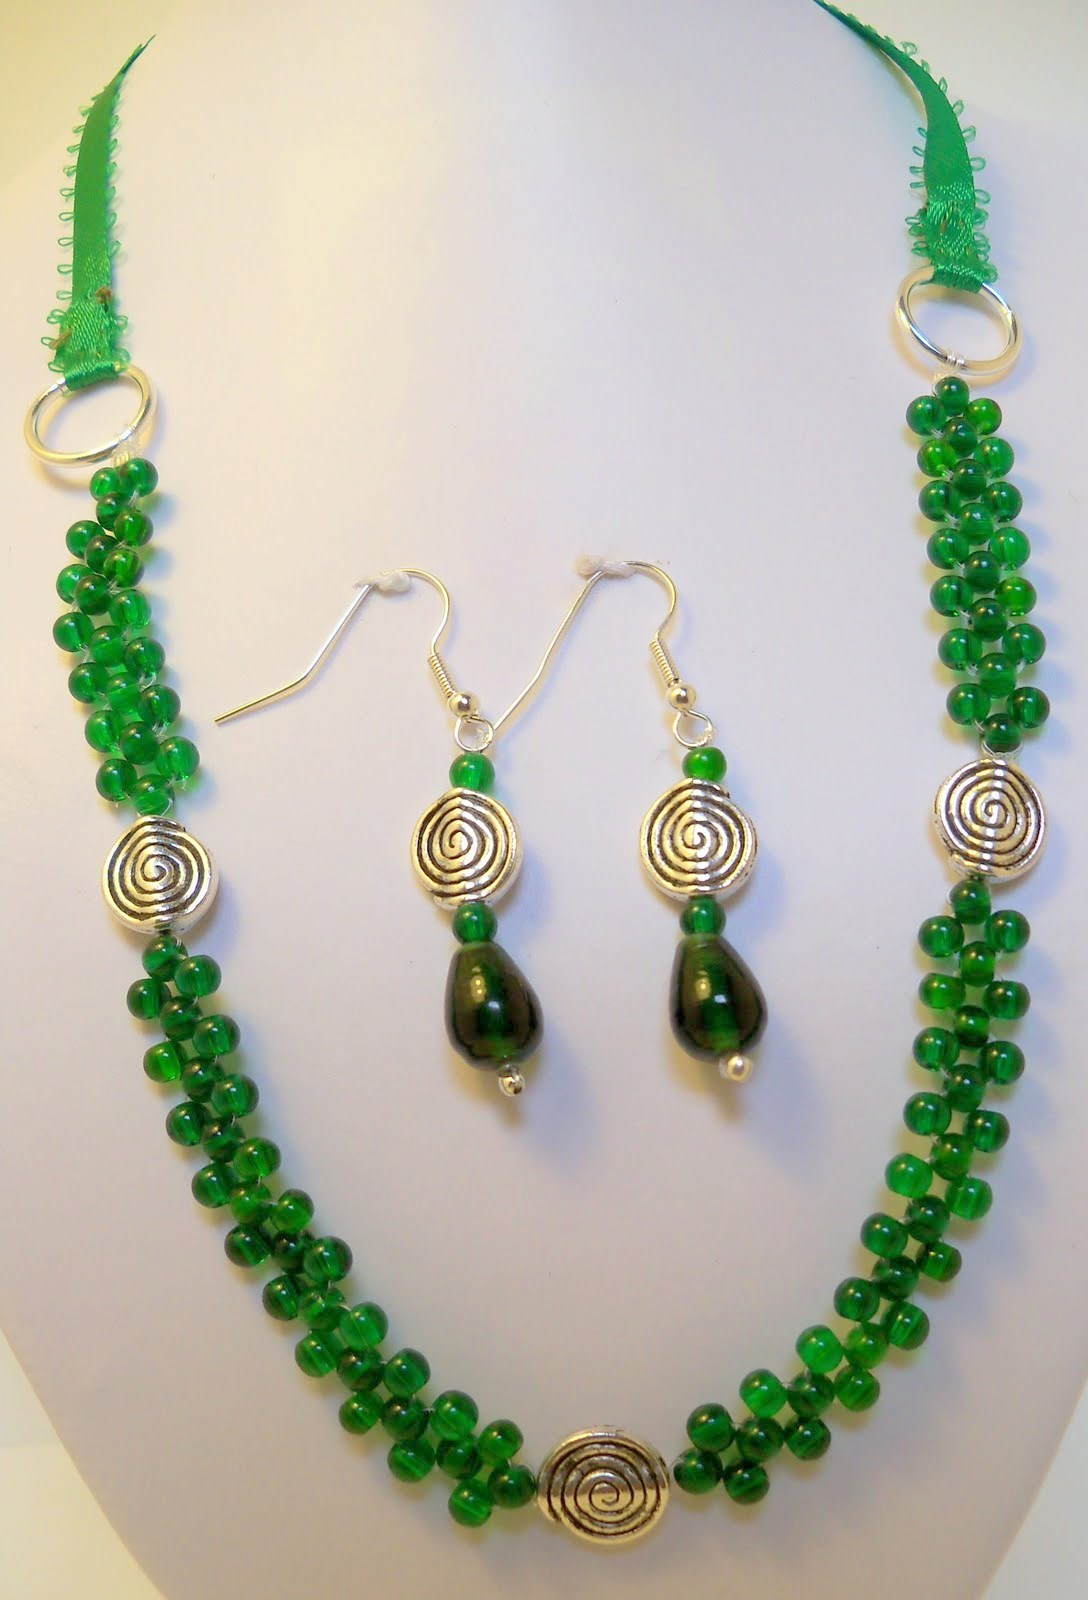 Braided green glass beads ribbon necklace and earrings